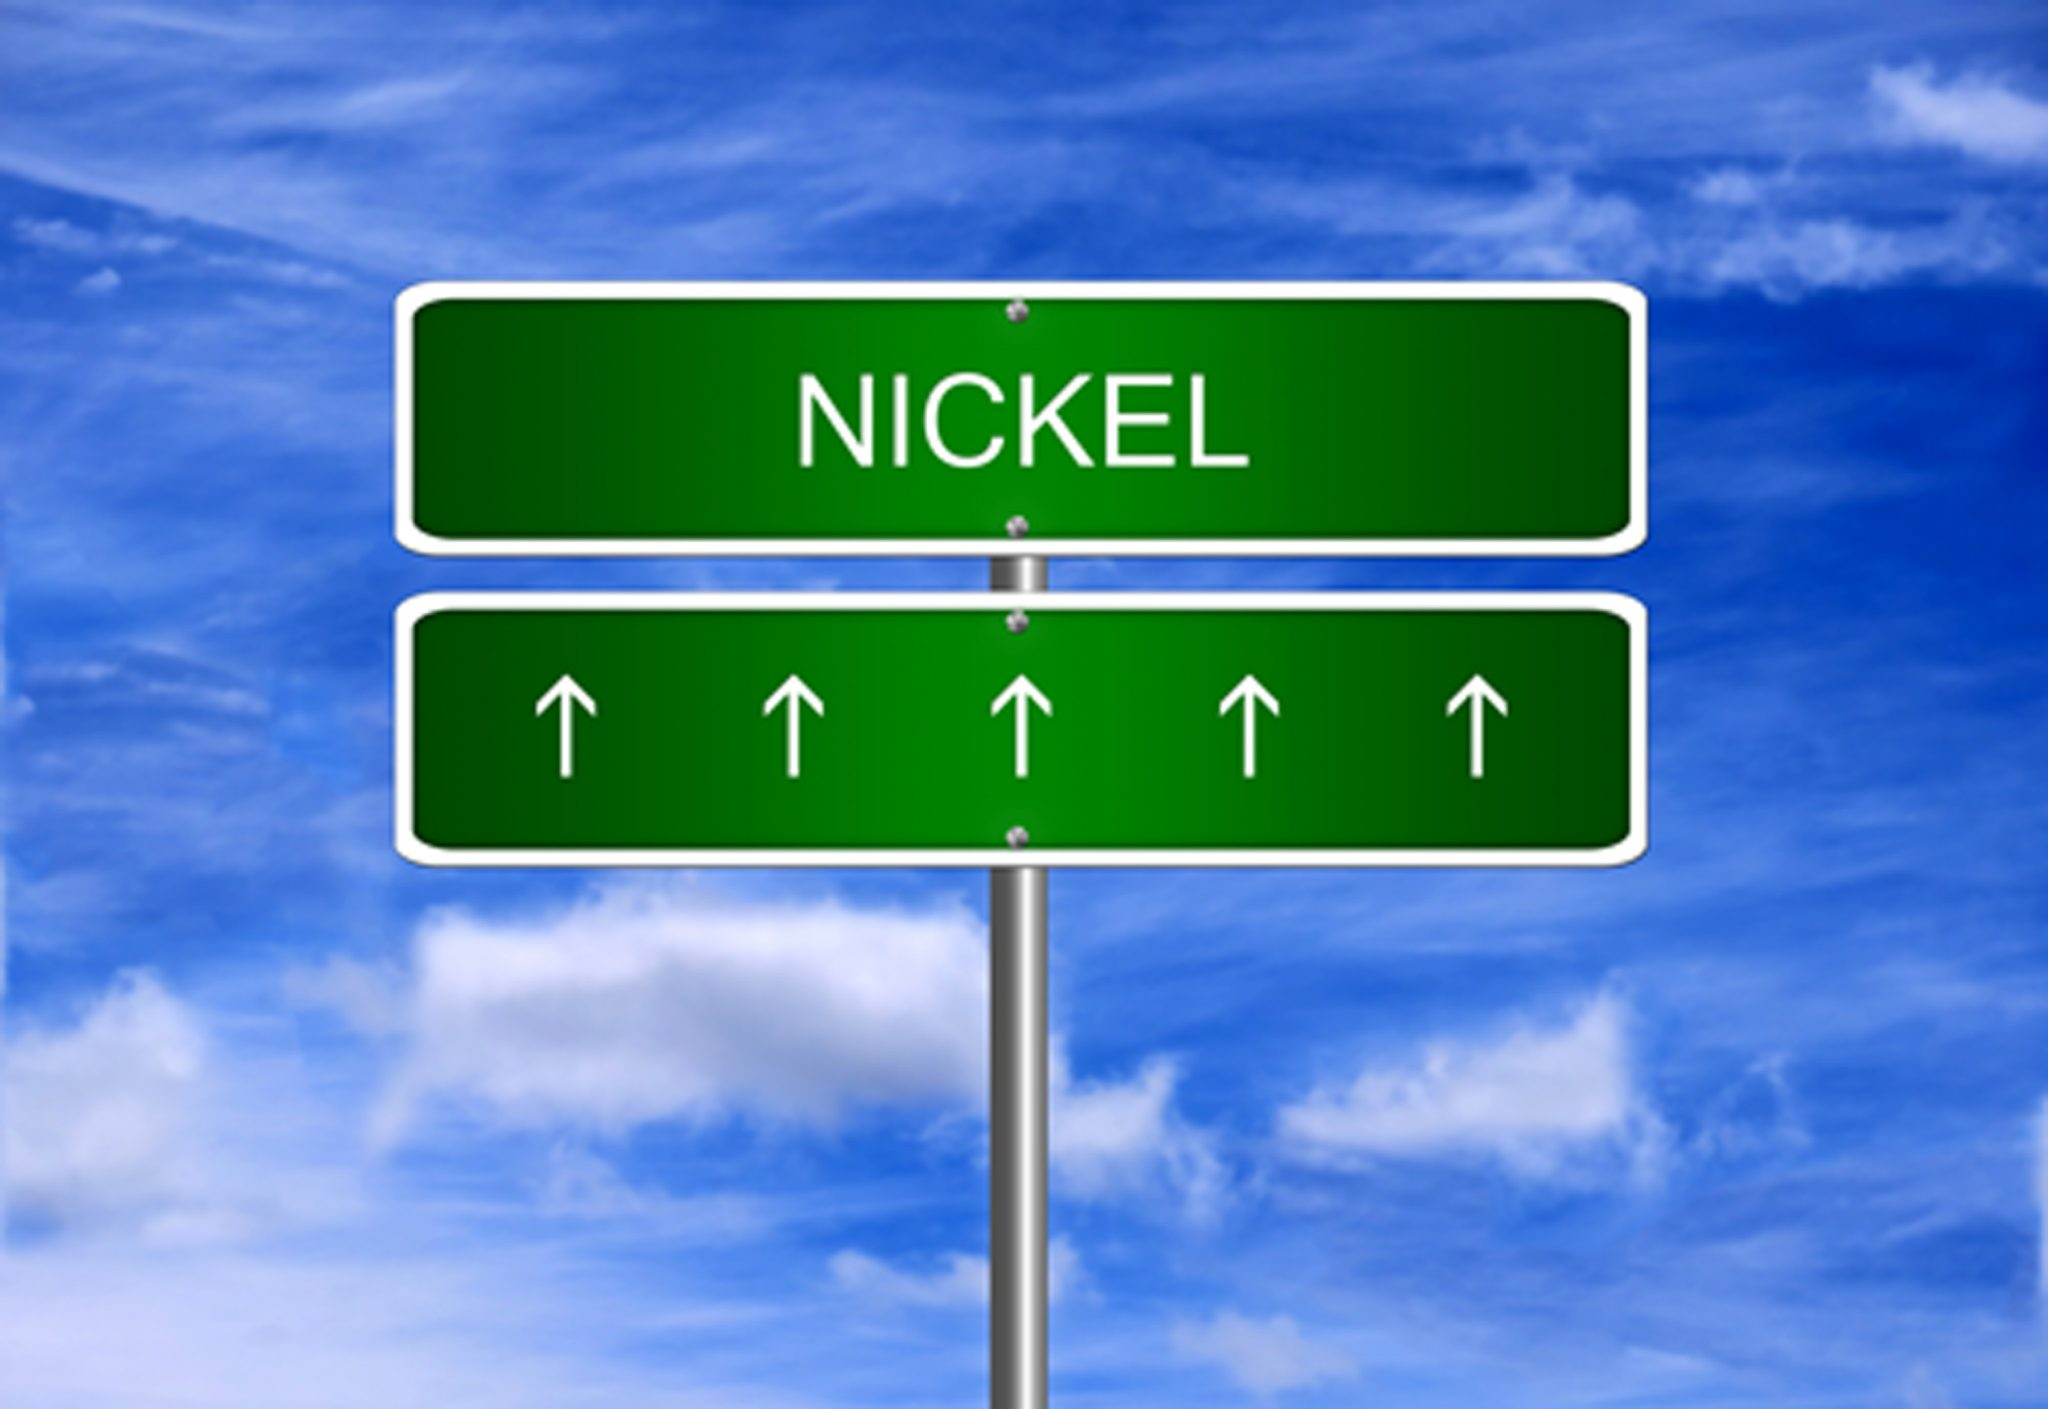 Why does Nickel Prices Affect Stainless Steel?